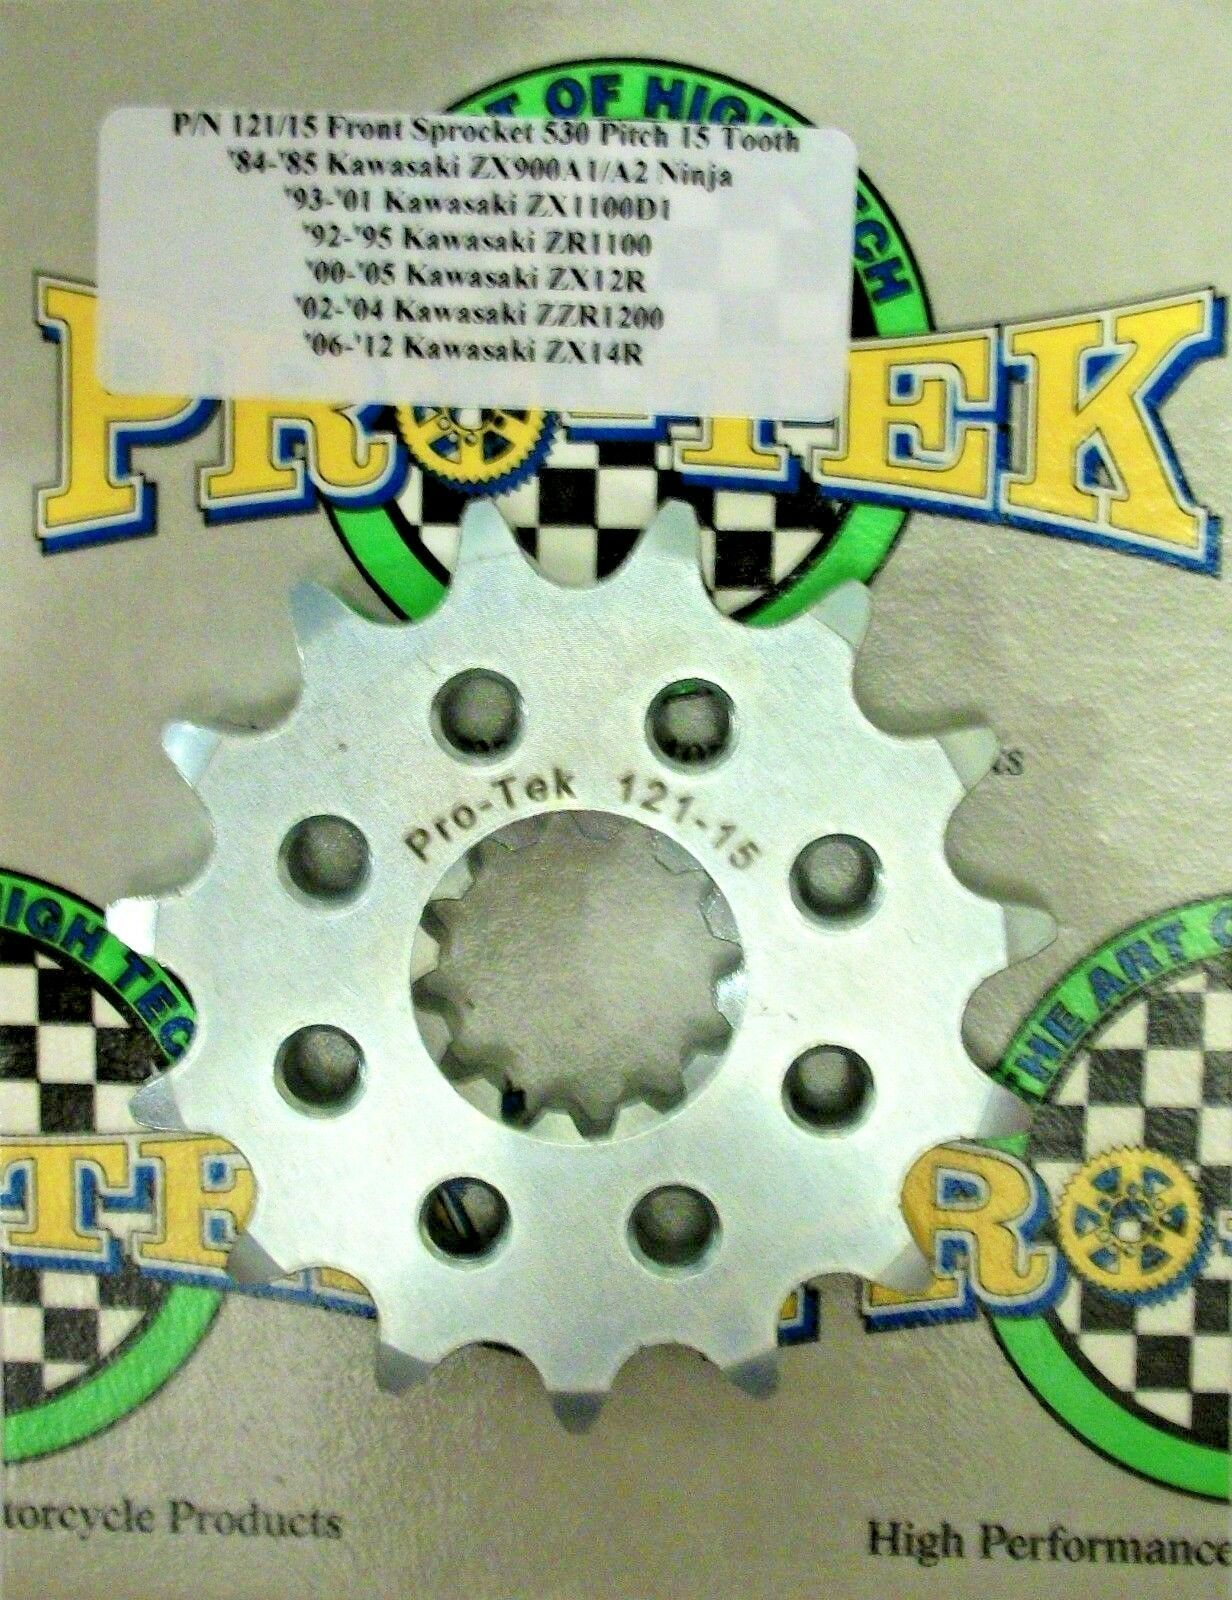 Primary image for Kawasaki Front Sprocket 530 Pitch 15T 16T 17T 18T 2003 2004 2005 Ninja ZX12R